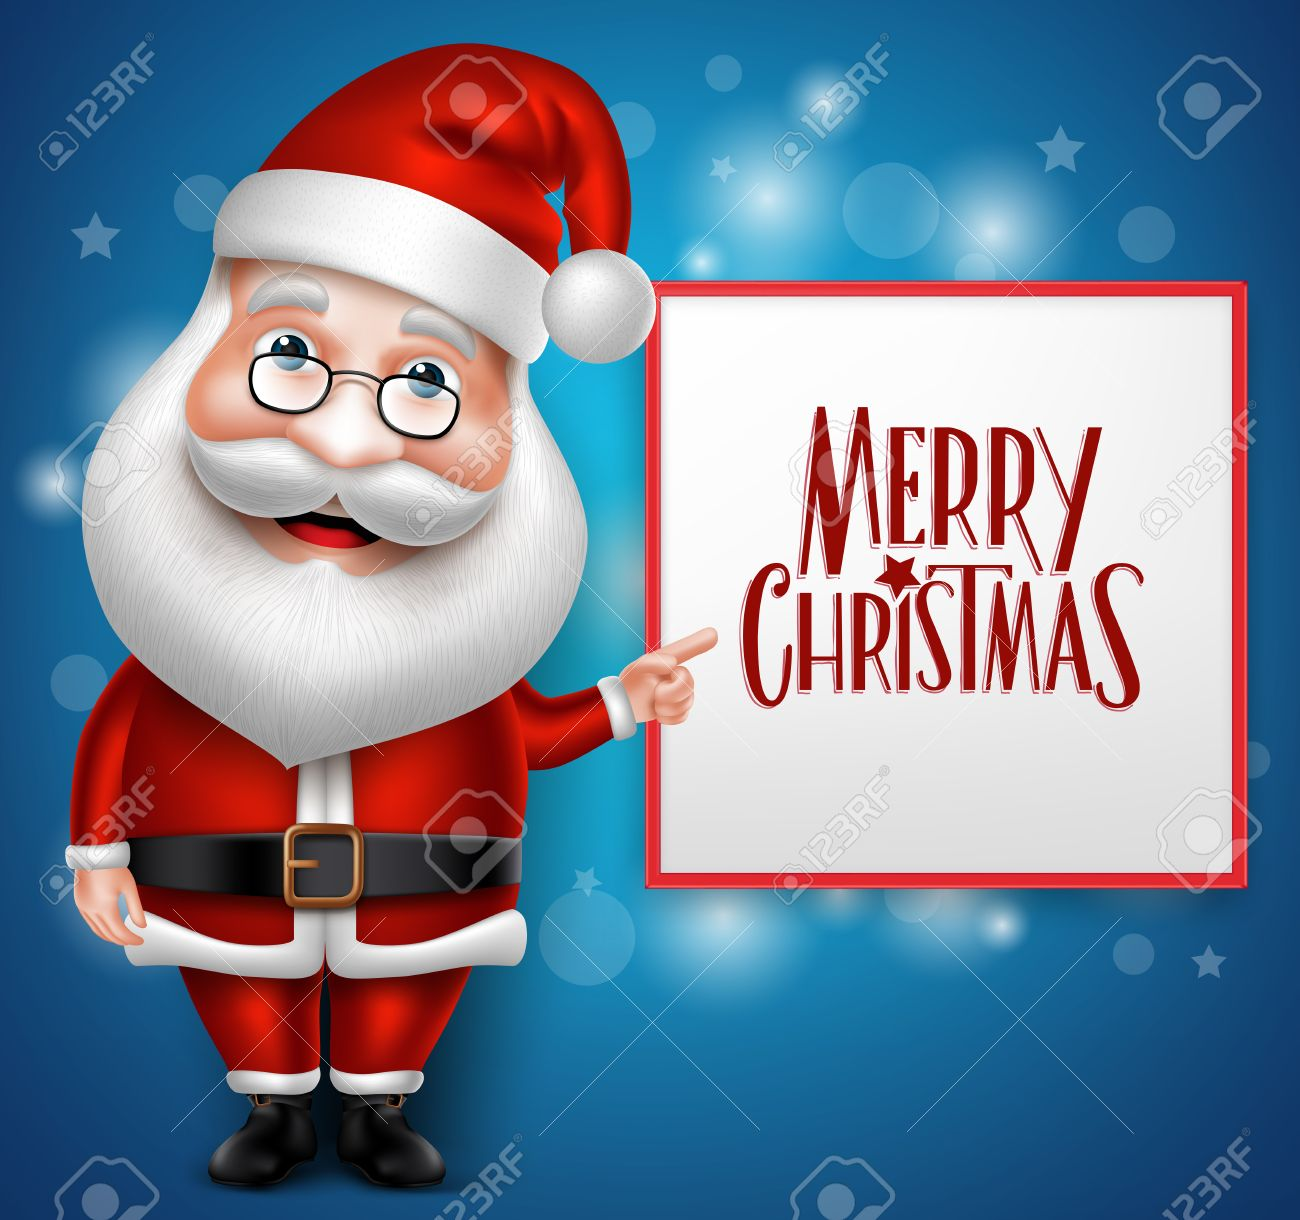 3D Realistic Santa Claus Cartoon Character Showing Merry Christmas Written in Blank Board with Blue Background. Vector Illustration - 45509063